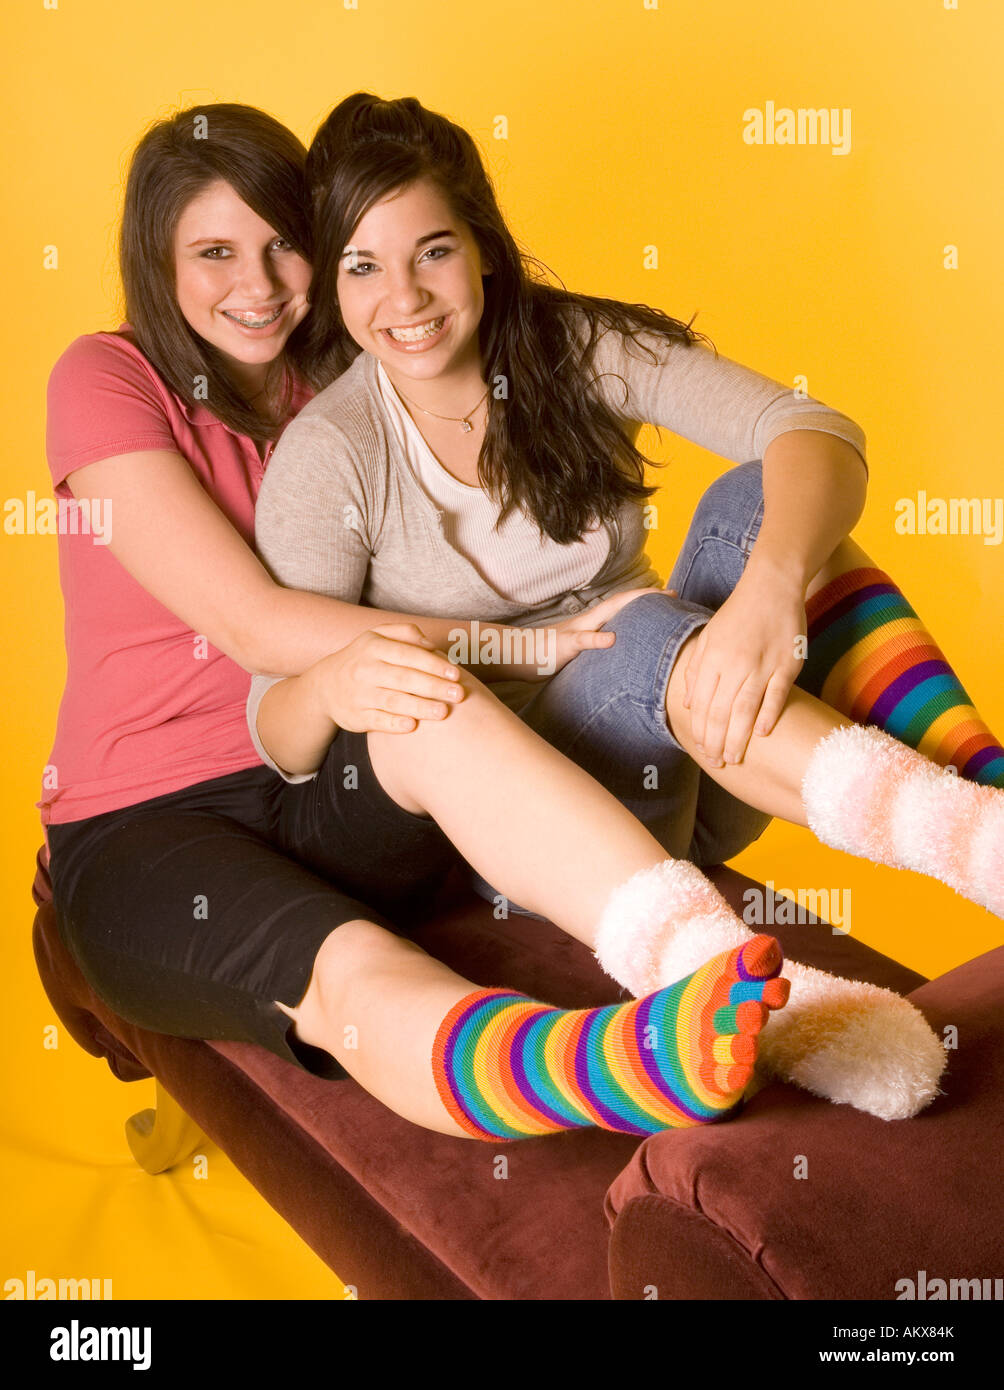 Colorful Teen Stock Image Image Of Lipstick Portrait: Two Teen Girls (15-17) Wearing Colorful Mismatched Socks